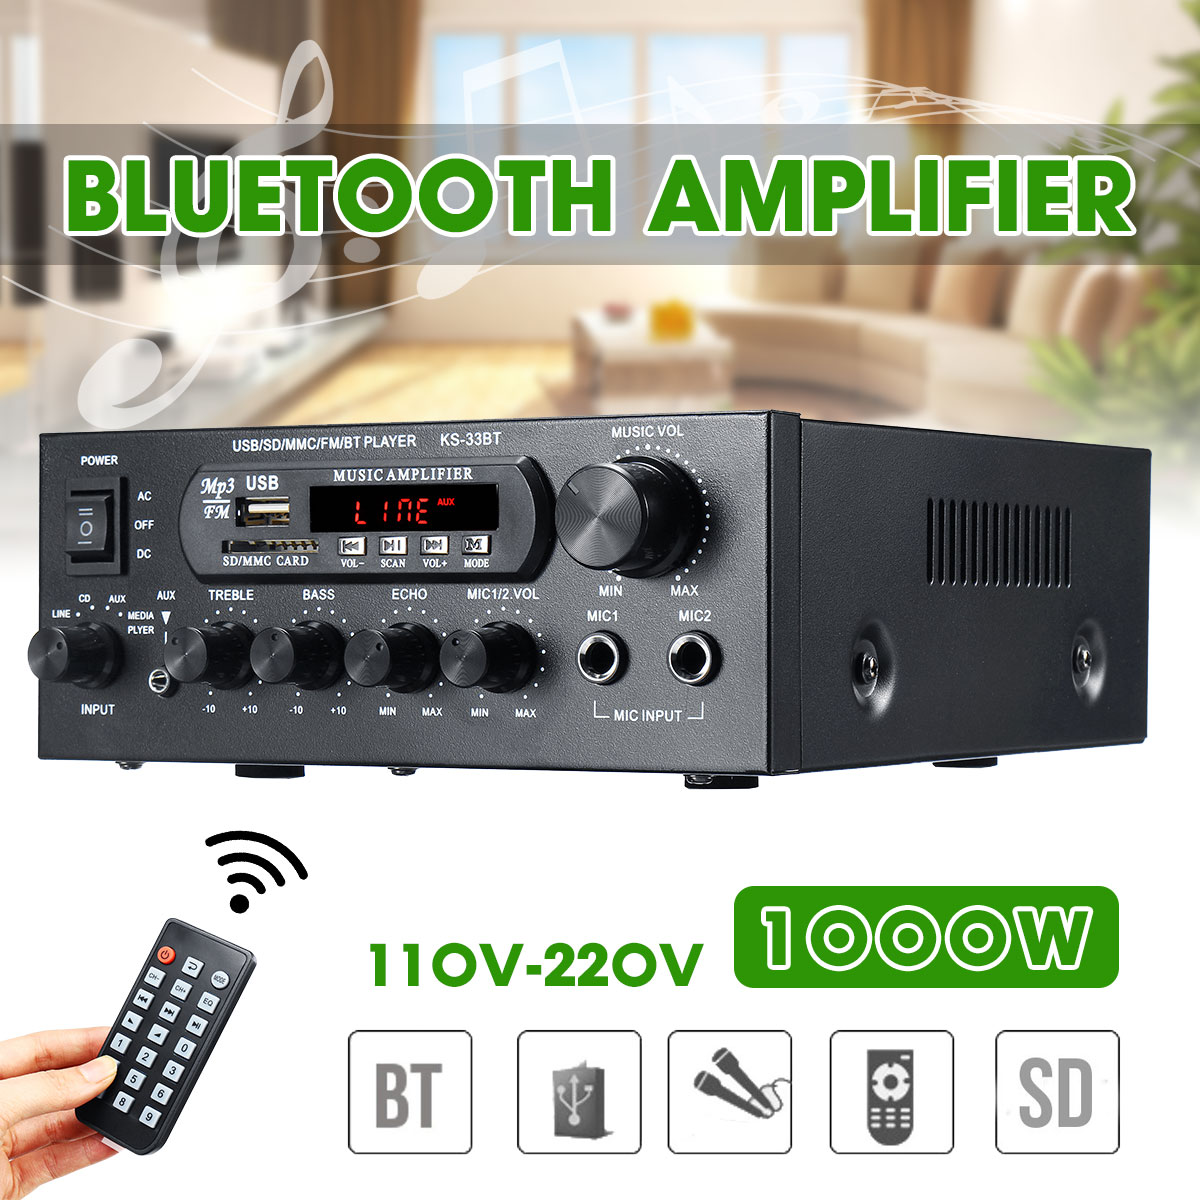 Audio-Power-Amplifier Sd-Card Remote-Control-Support Bluetooth Home Theater 110V 1000W title=